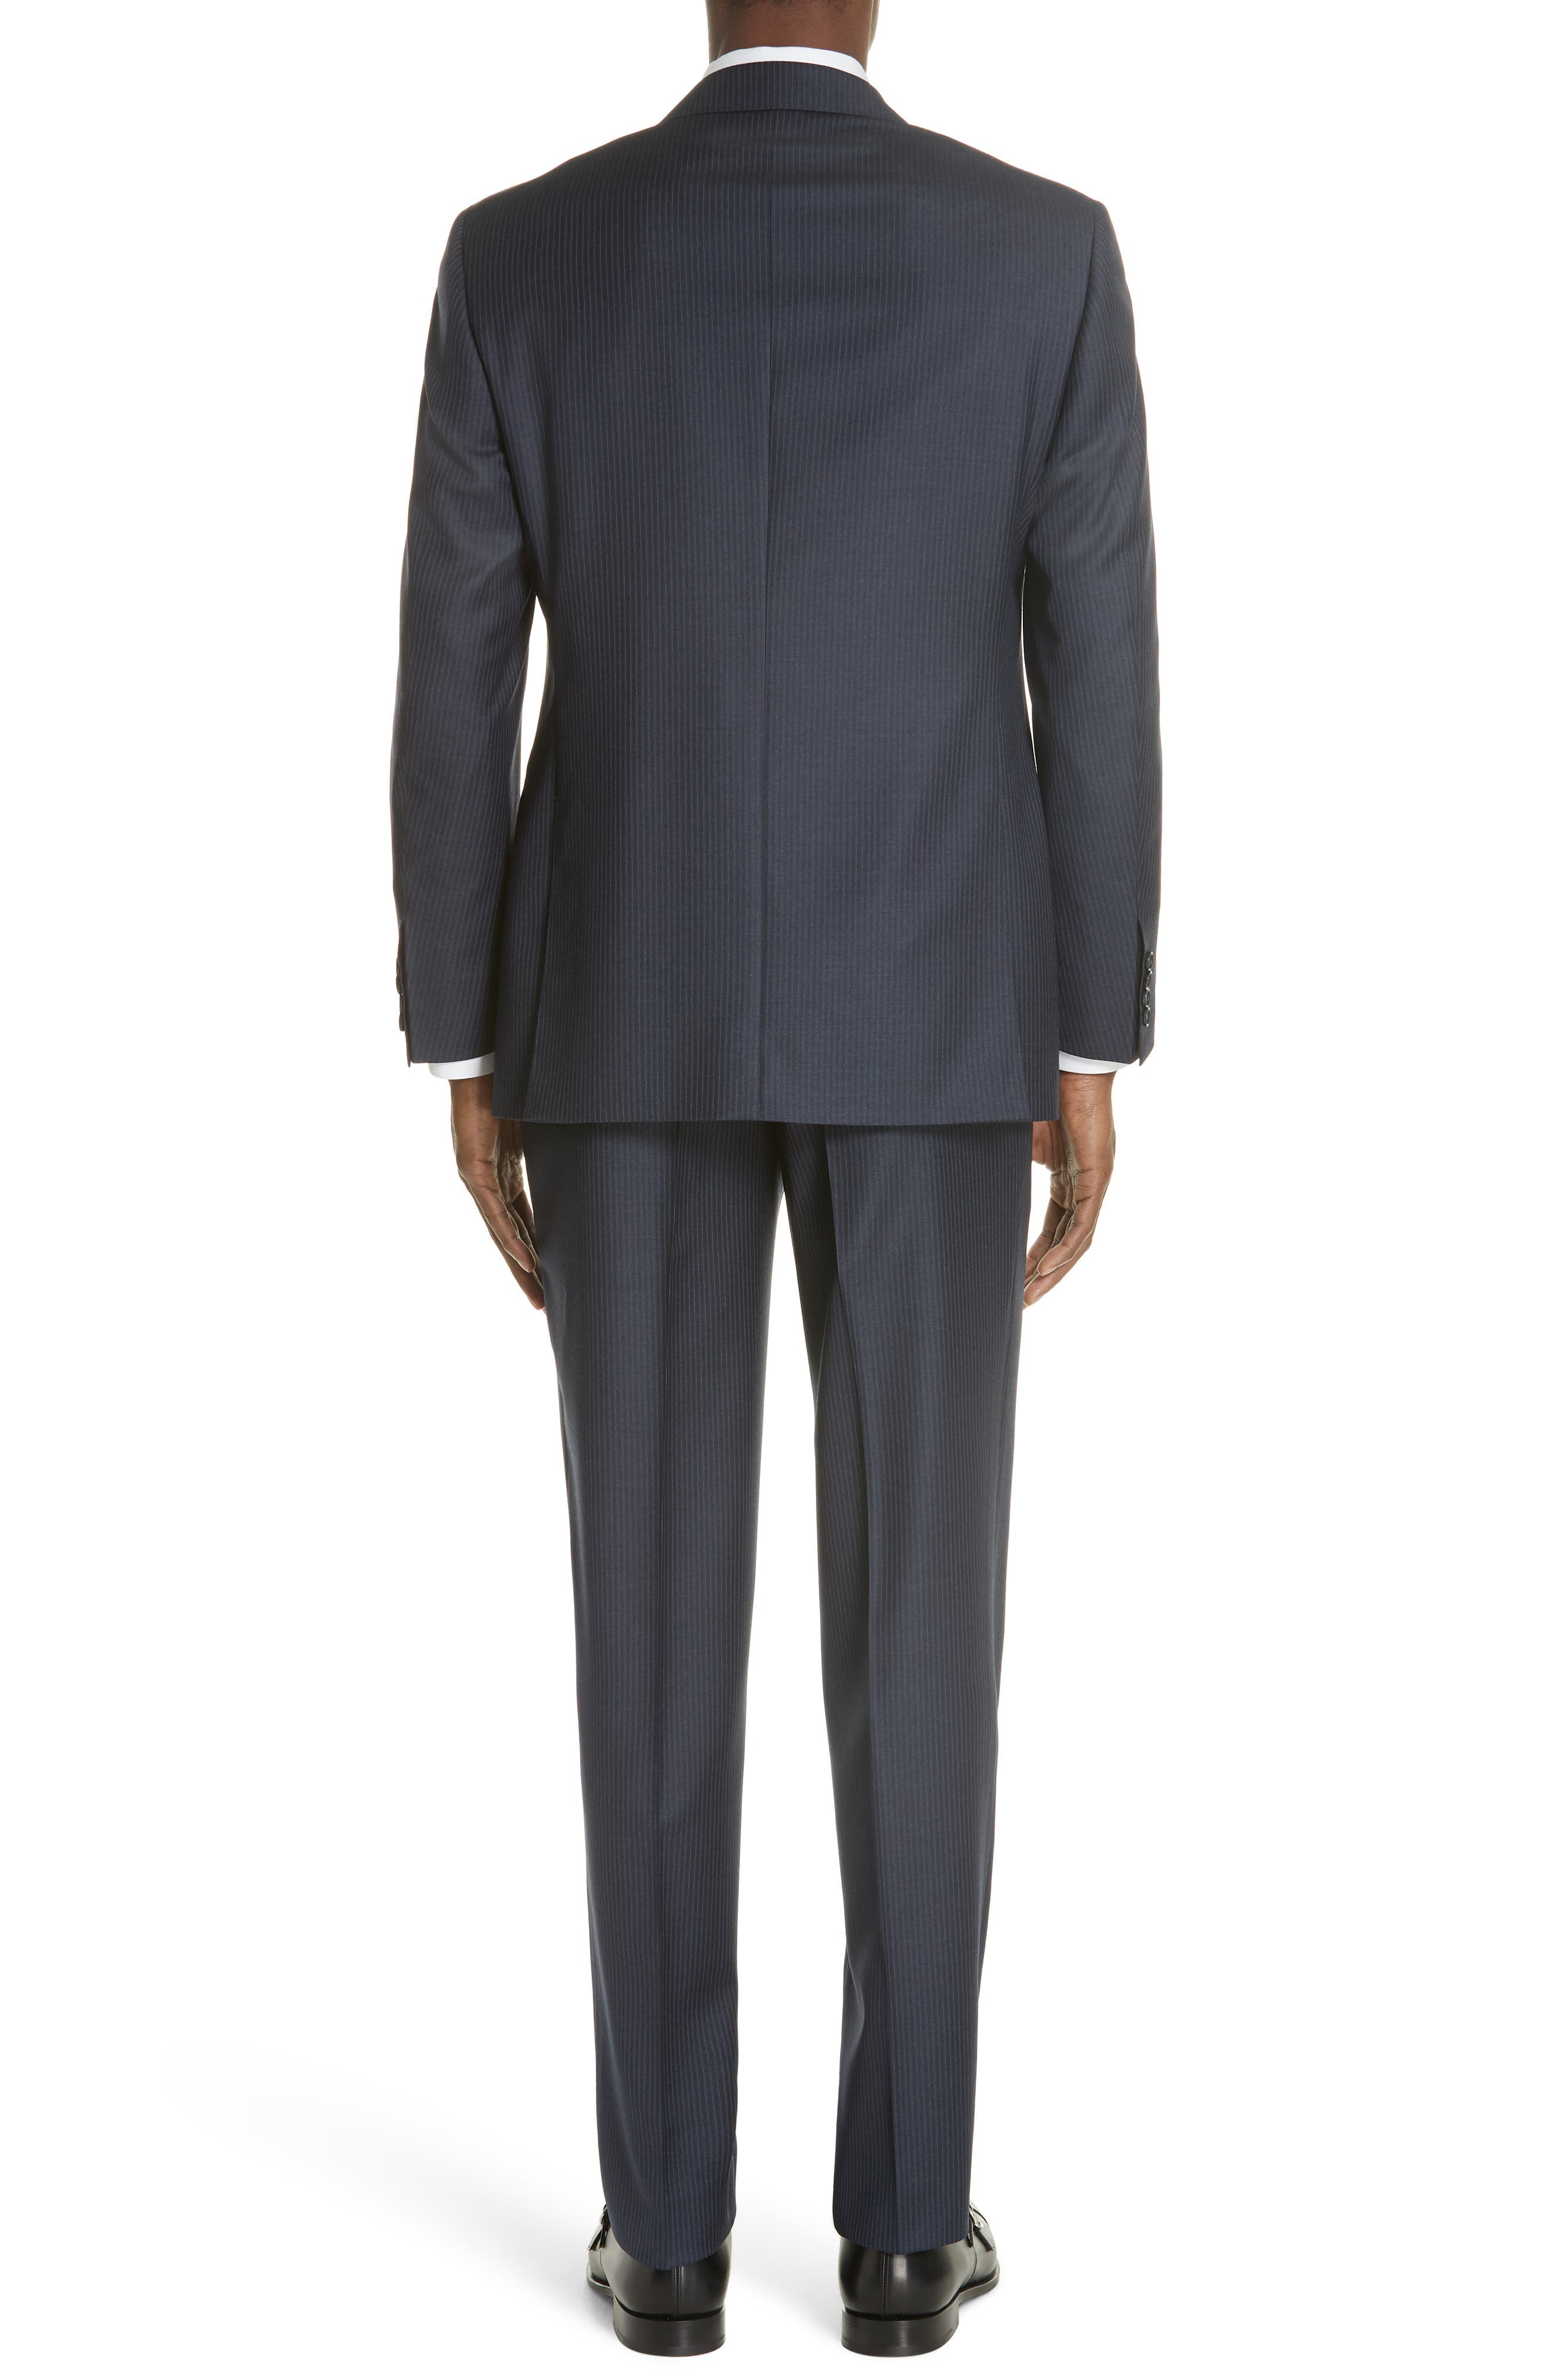 CANALI,                             Classic Fit Pinstripe Wool Suit,                             Alternate thumbnail 2, color,                             410